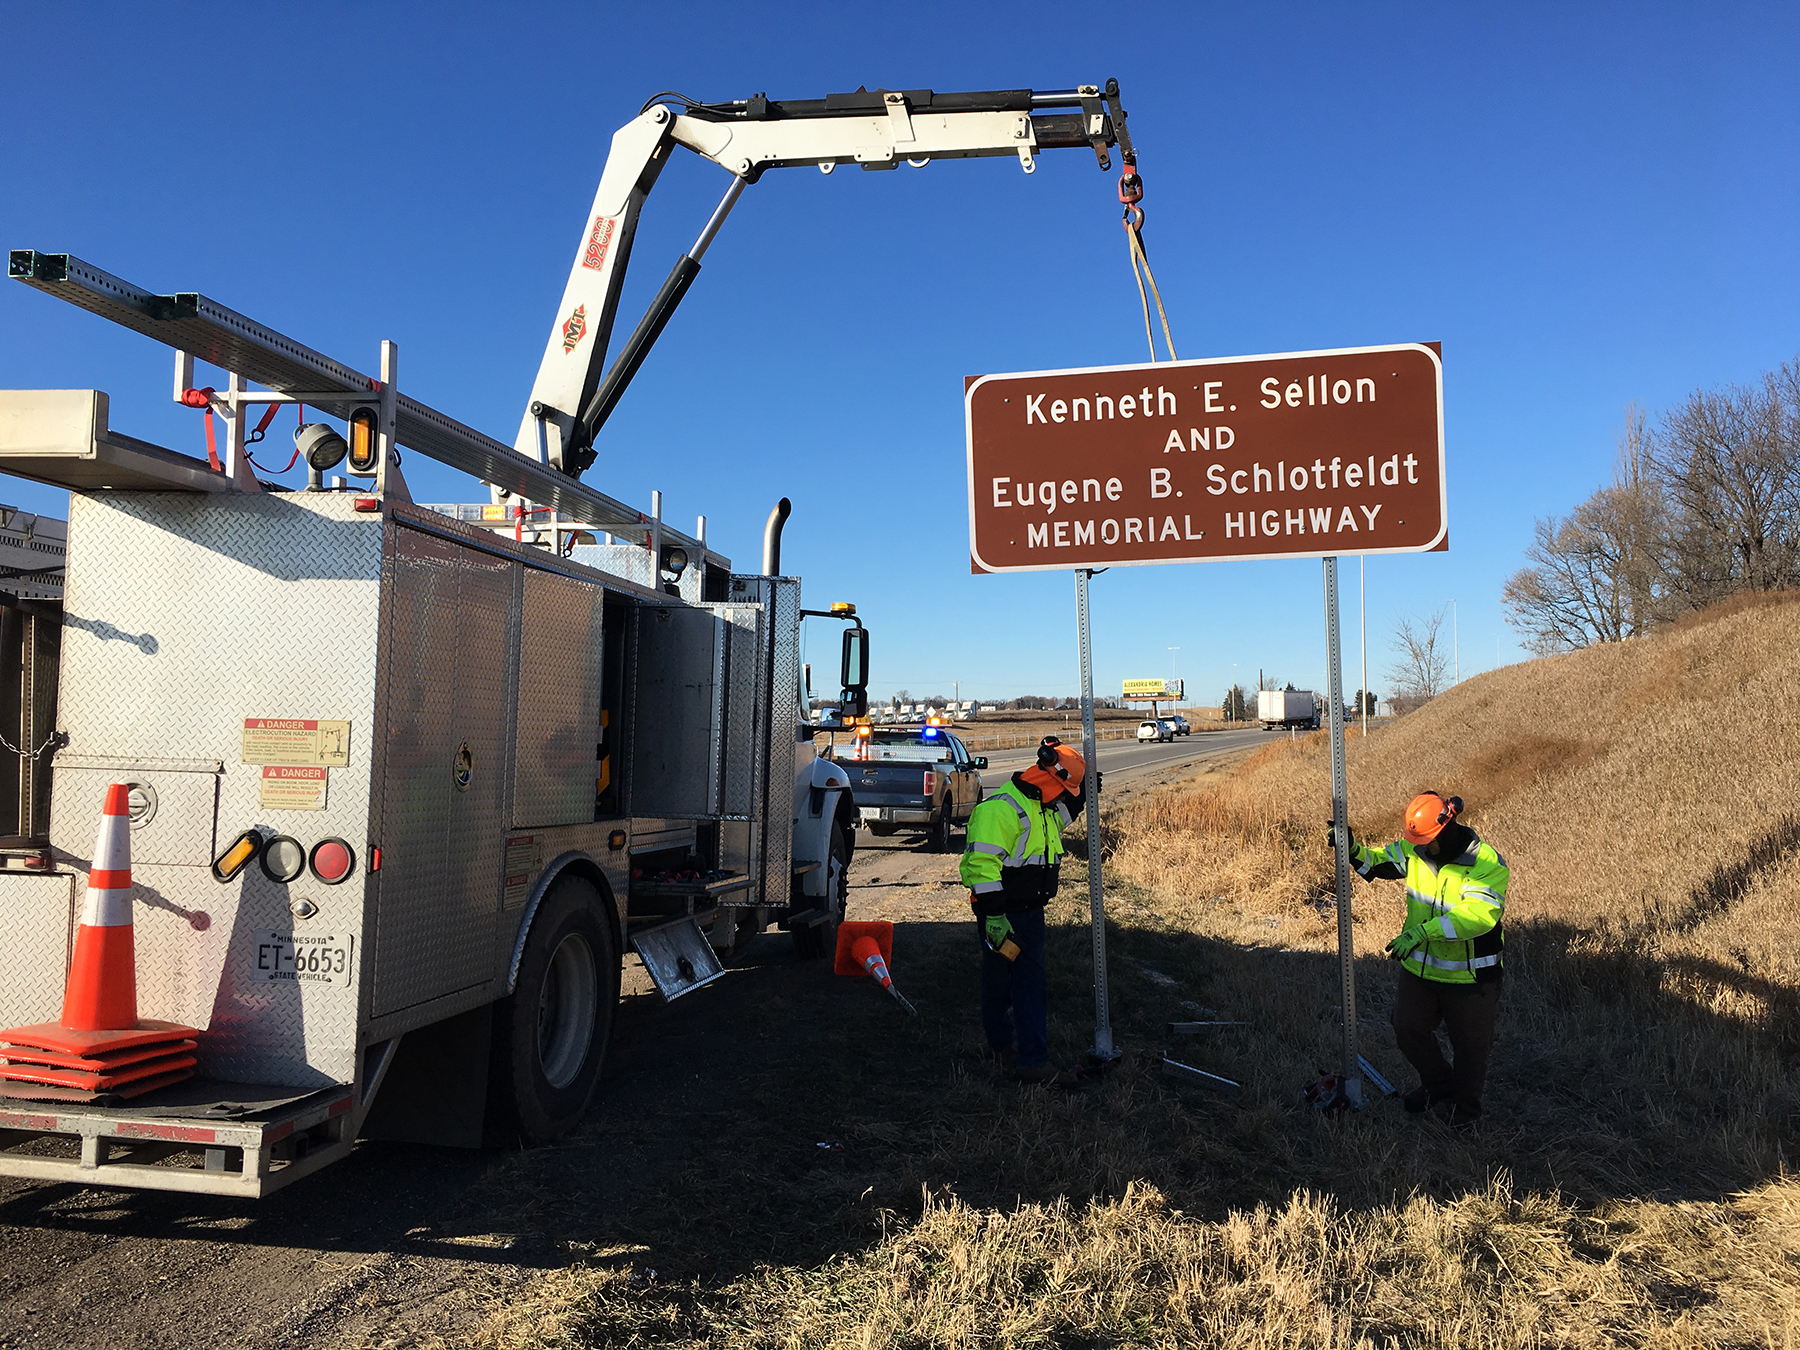 Photo: work crews install a sign on the side of Interstate 94. The sign says Kenneth E Sellon and Eugene B Schlotfeldt memorial highway